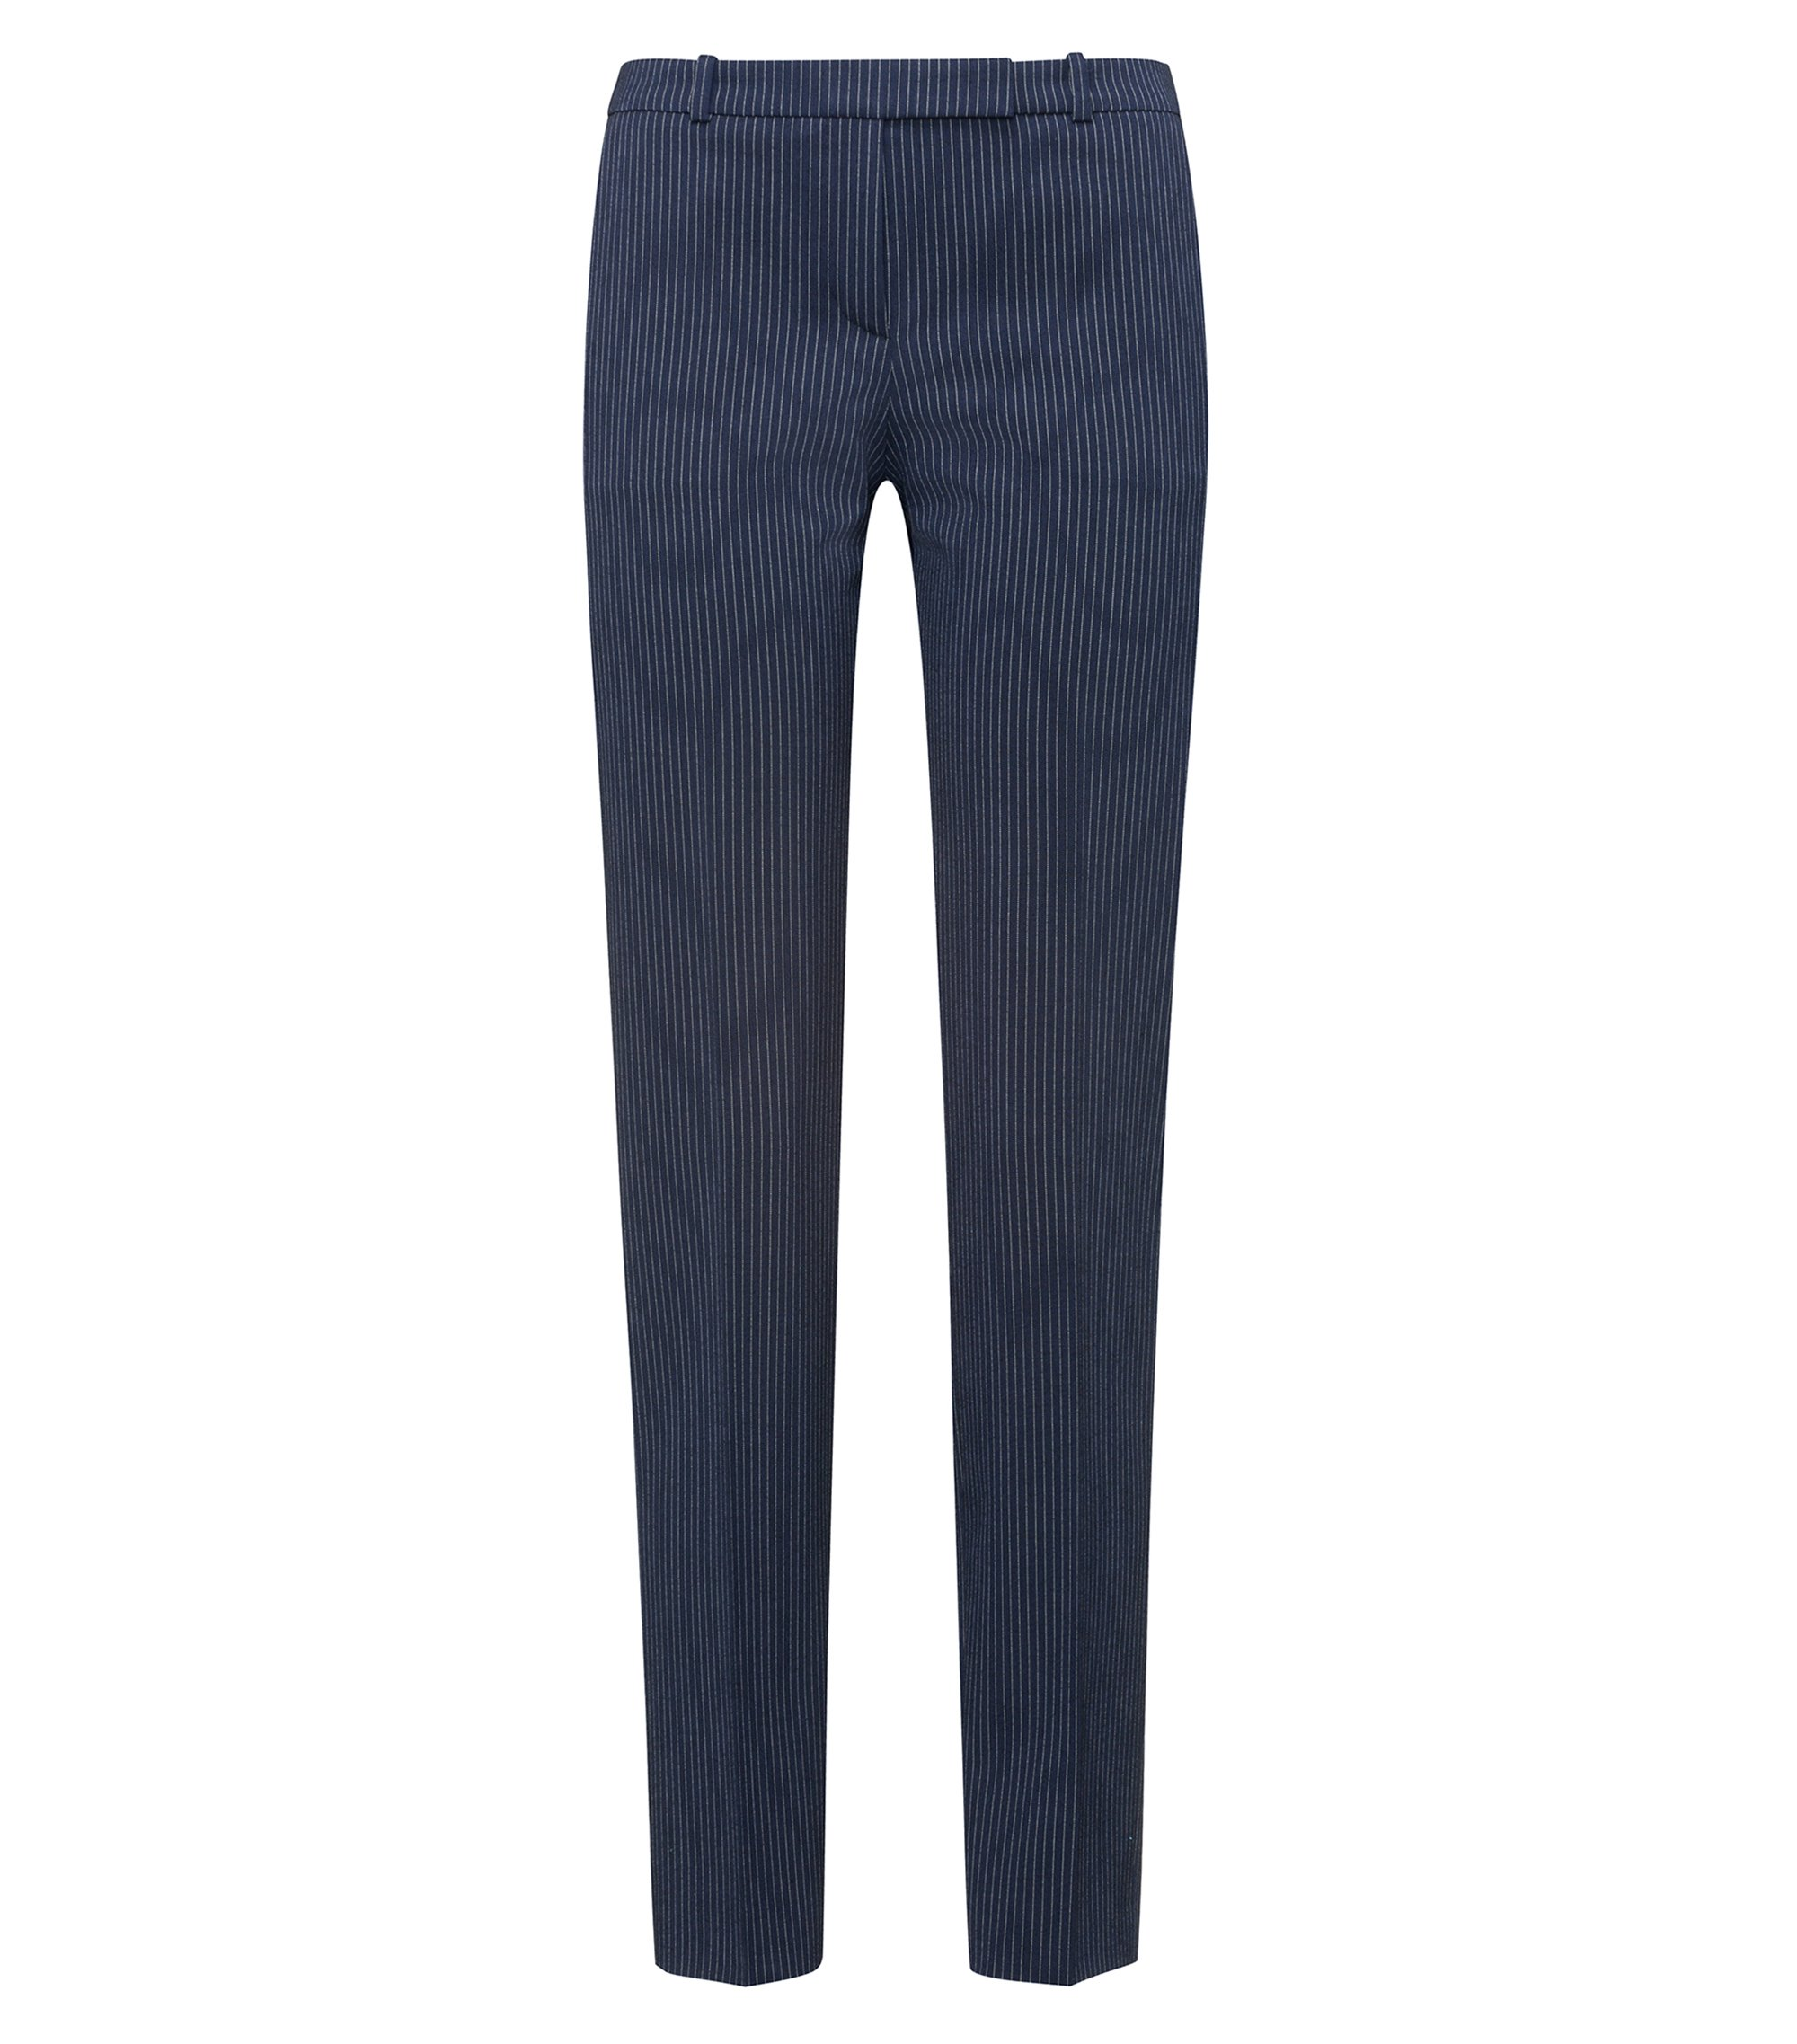 Regular-fit cigarette pants in pinstripe stretch fabric, Open Blue